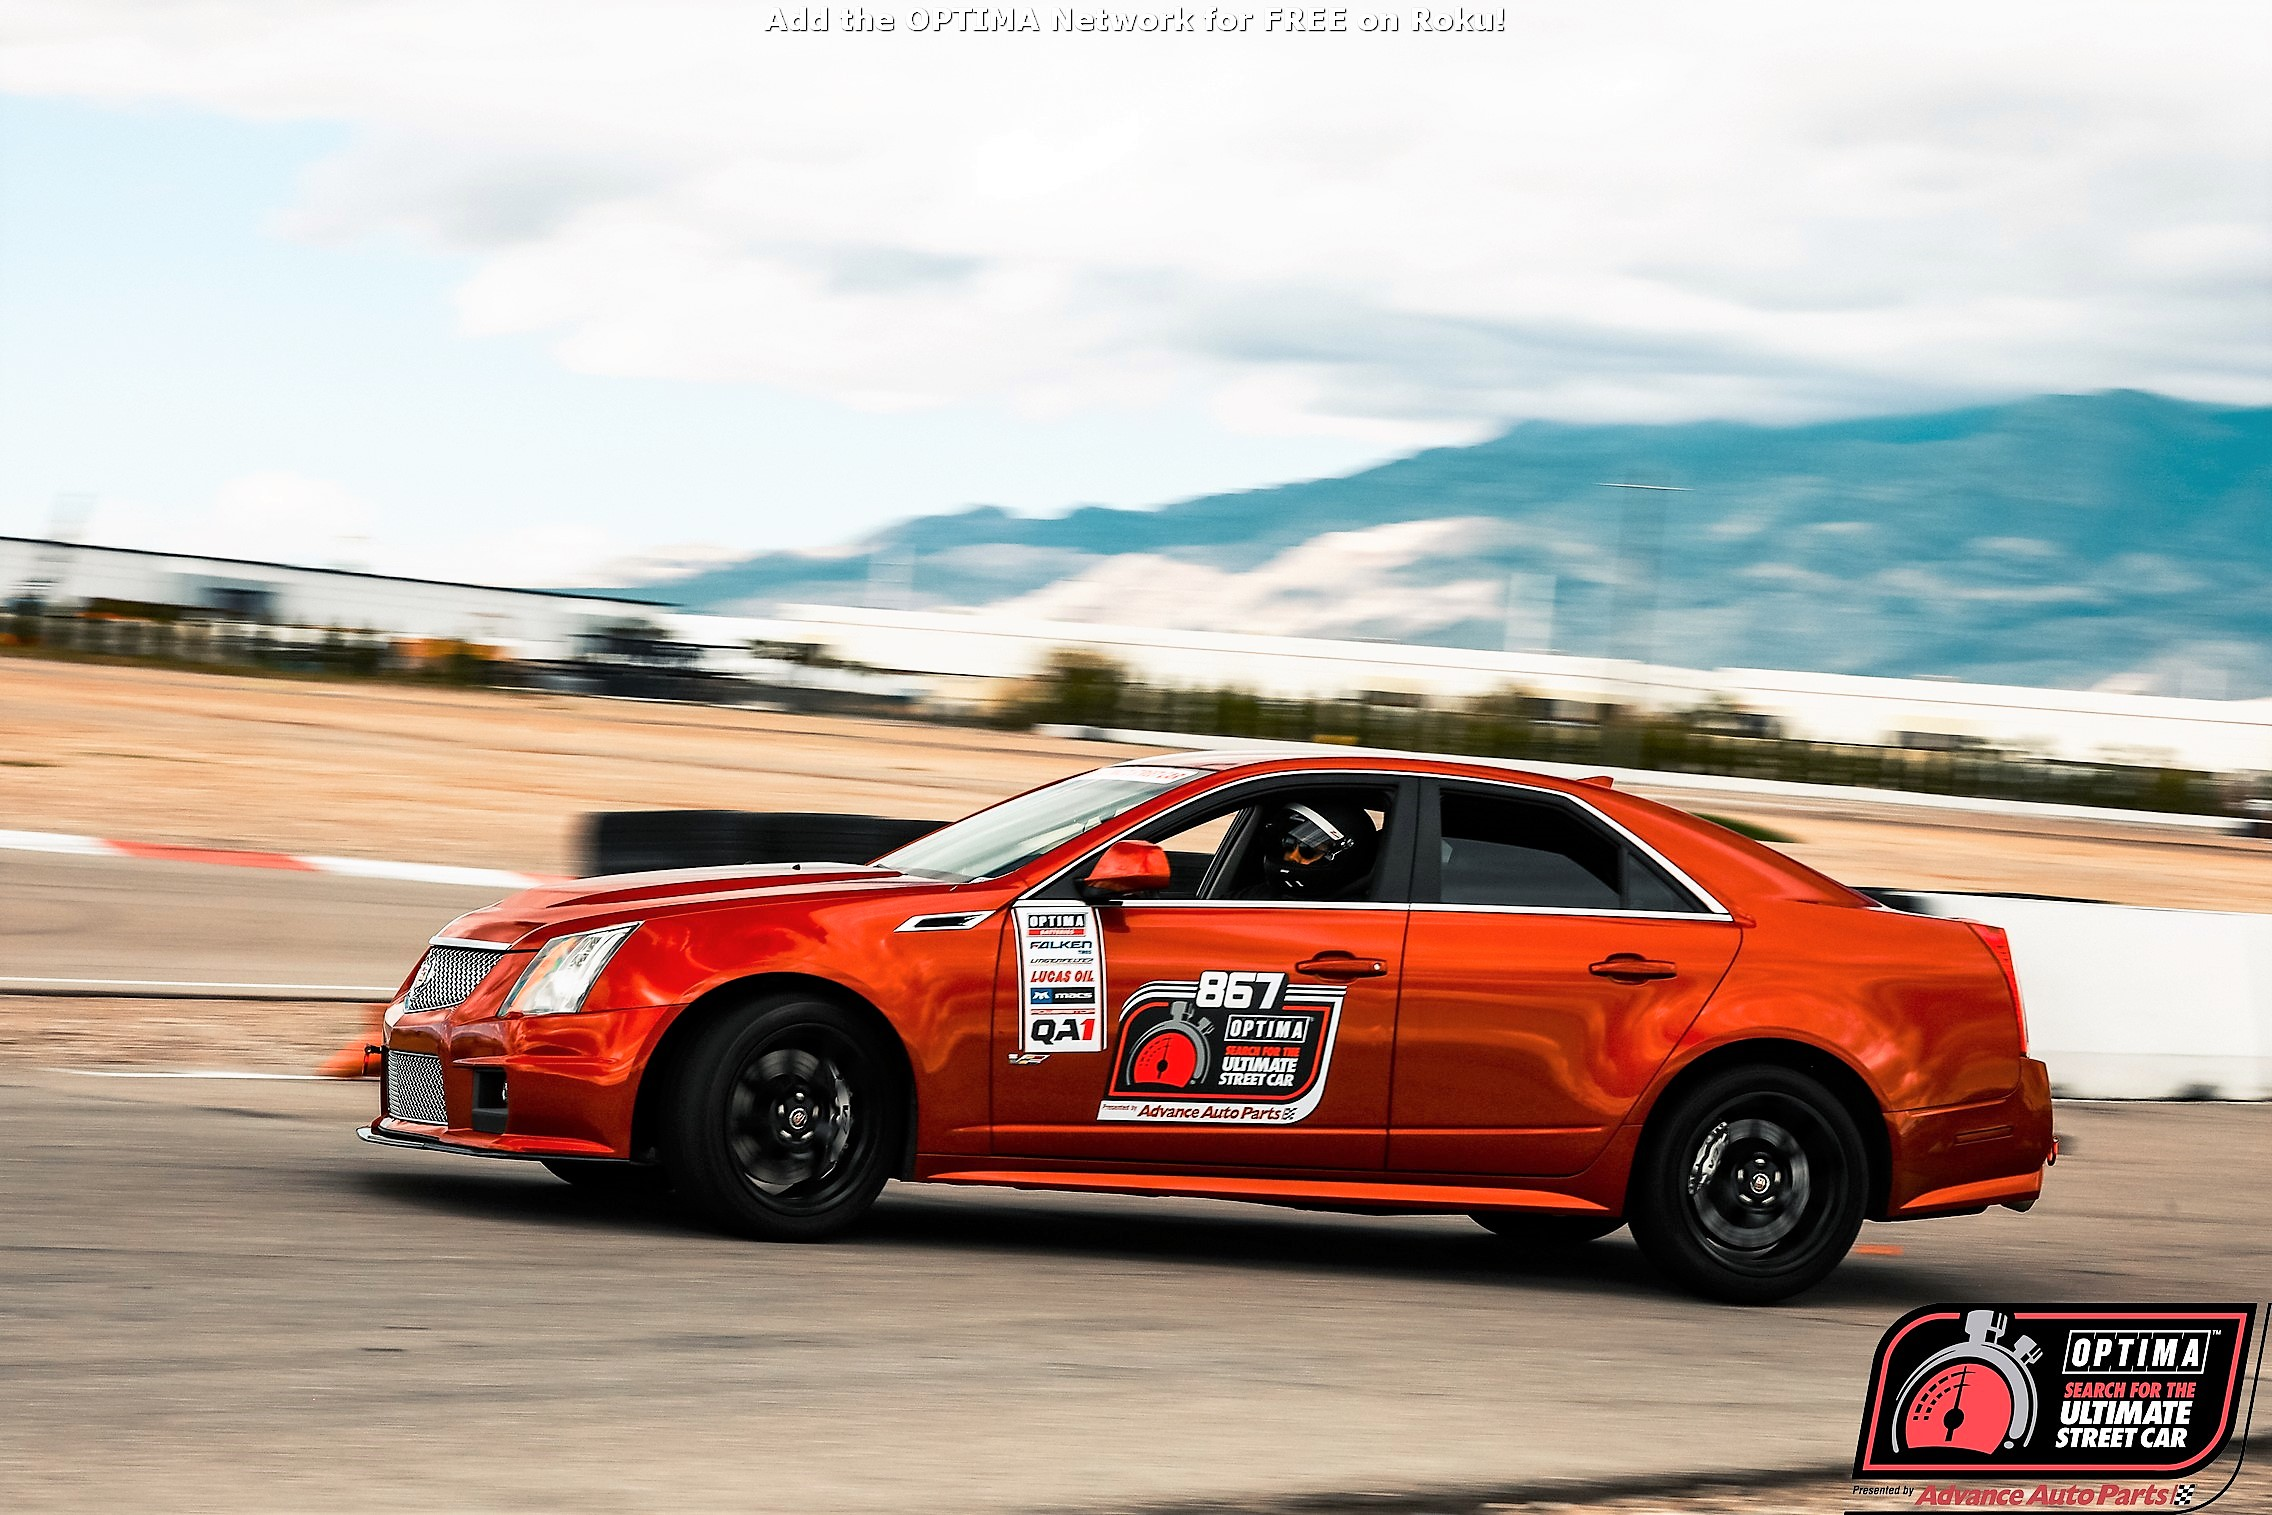 Cadillac CTS battery size